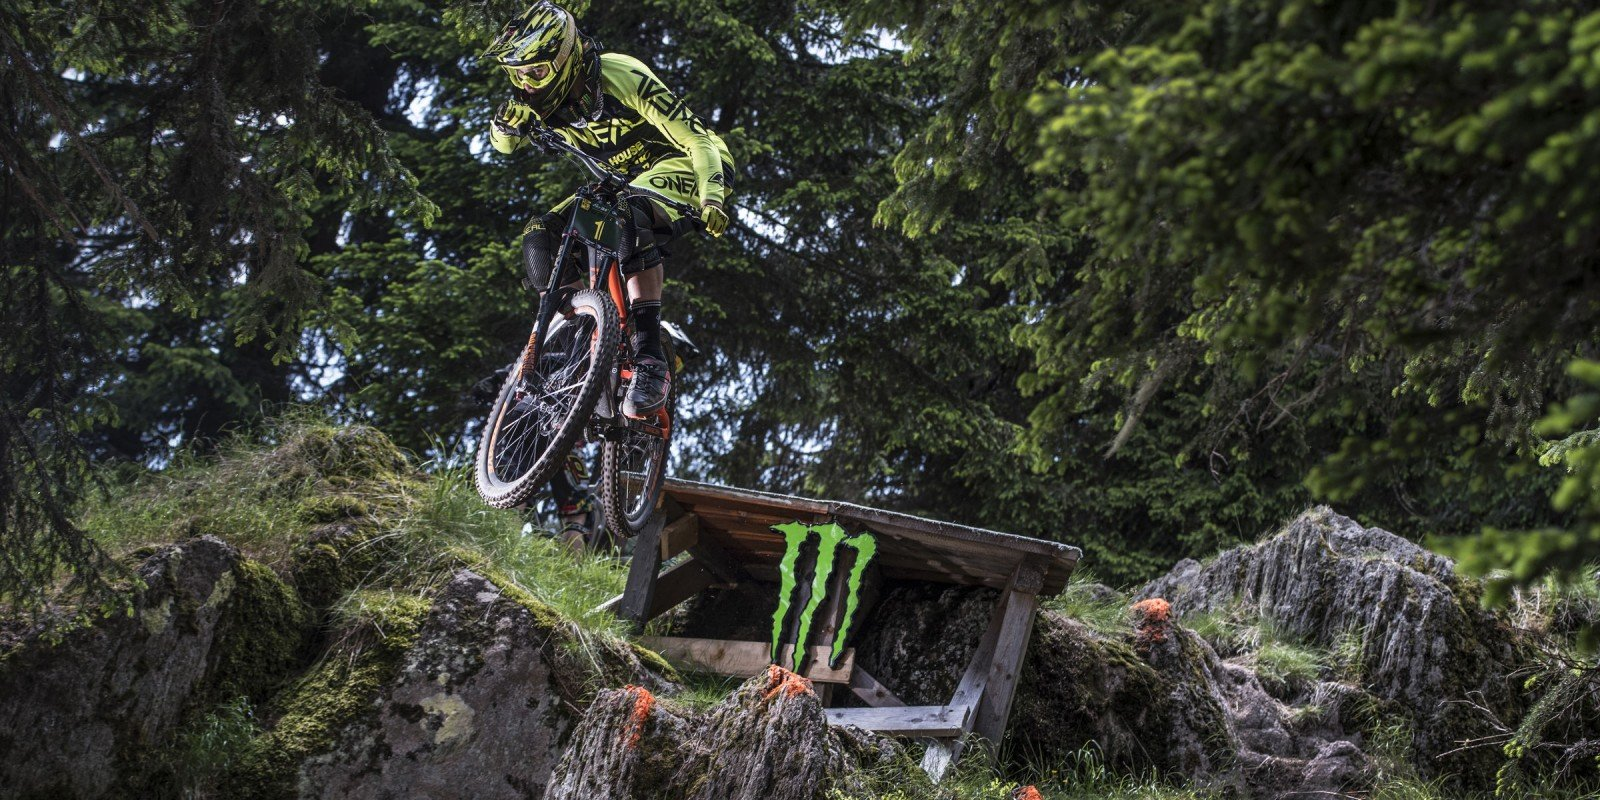 Strong start of the season for Stivian Gatev at Pamporovo Bike Fest 2017